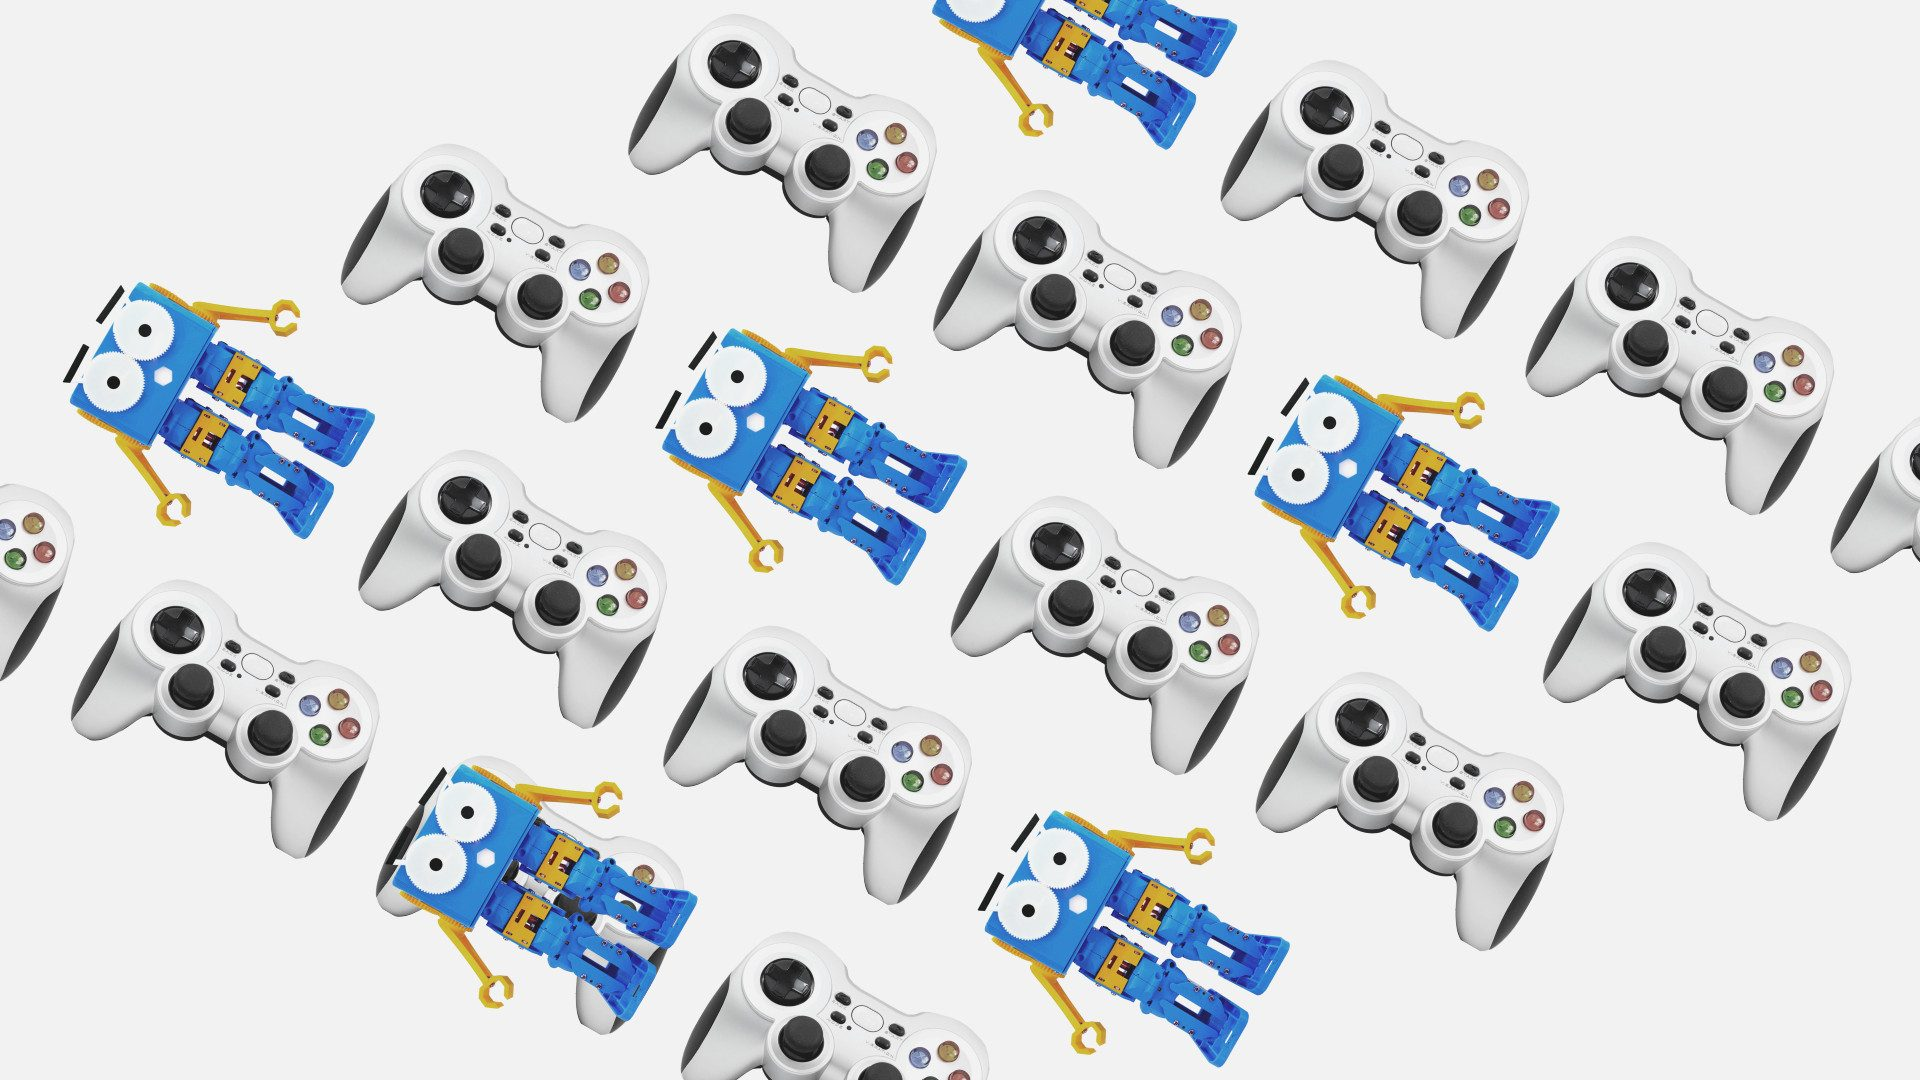 Control your Marty with a GamePad using Python